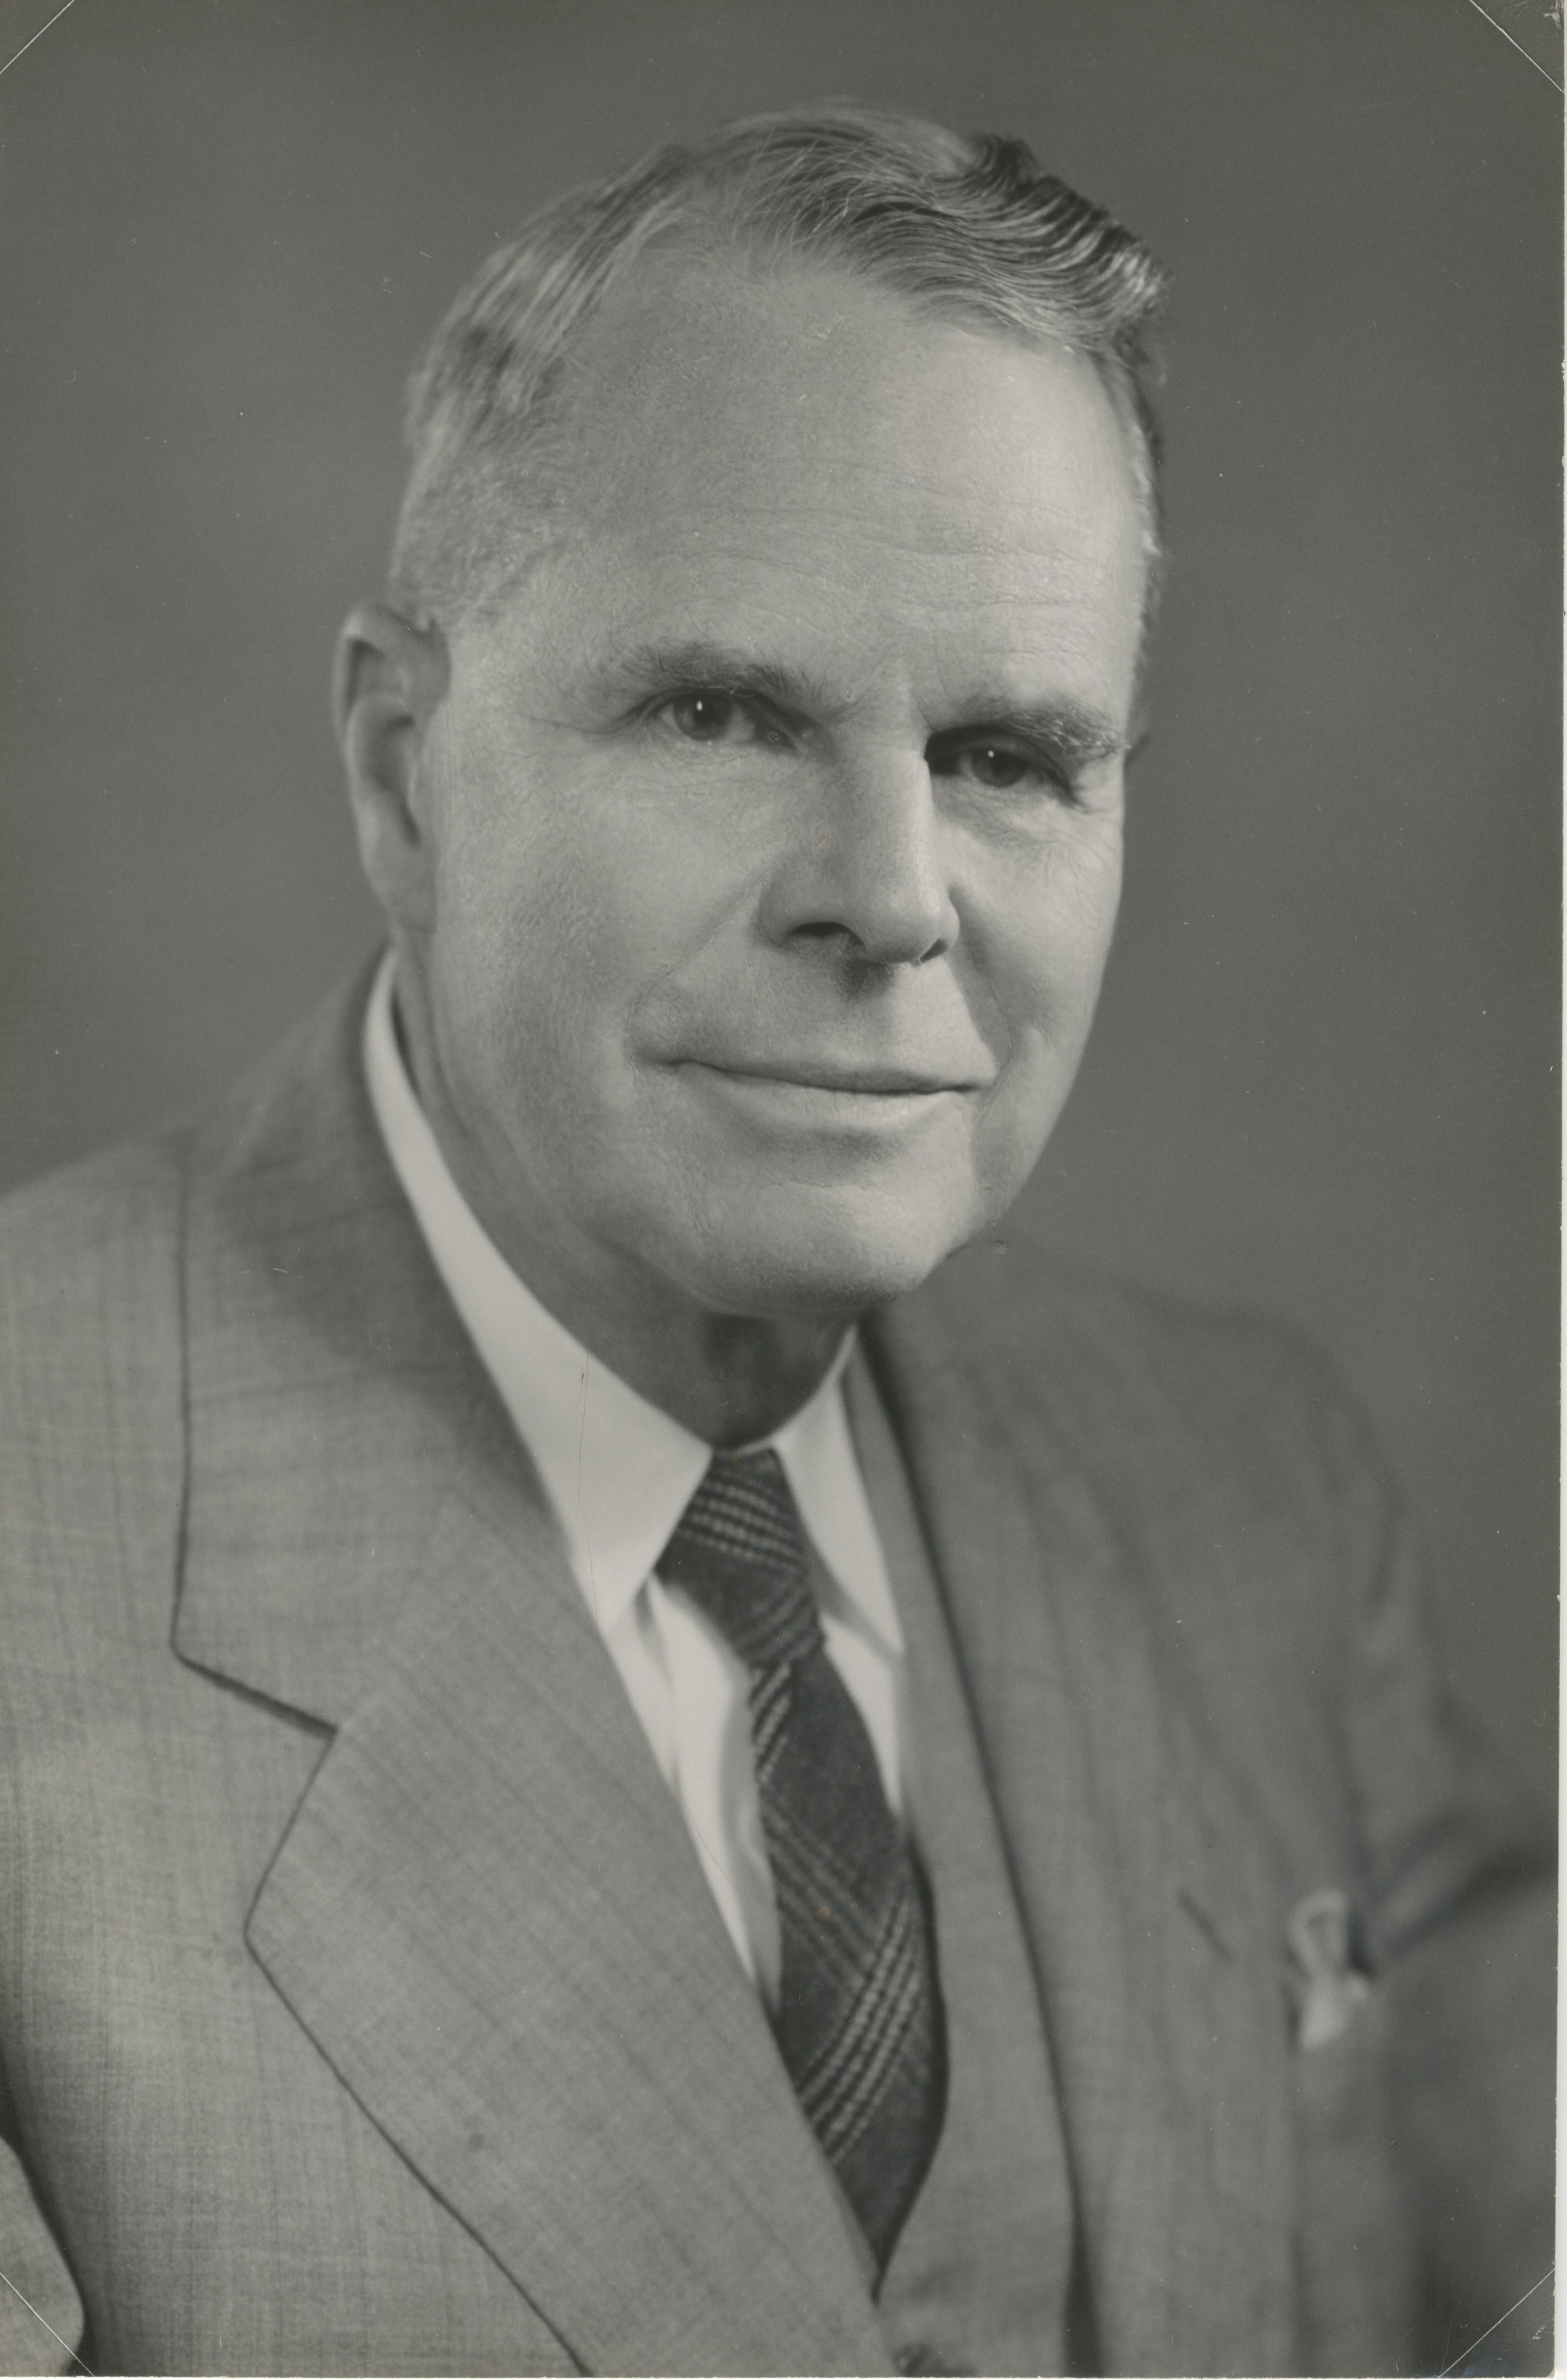 University of Michigan Professor Hobart H. Willard, Fluorine Pioneer, Undated image